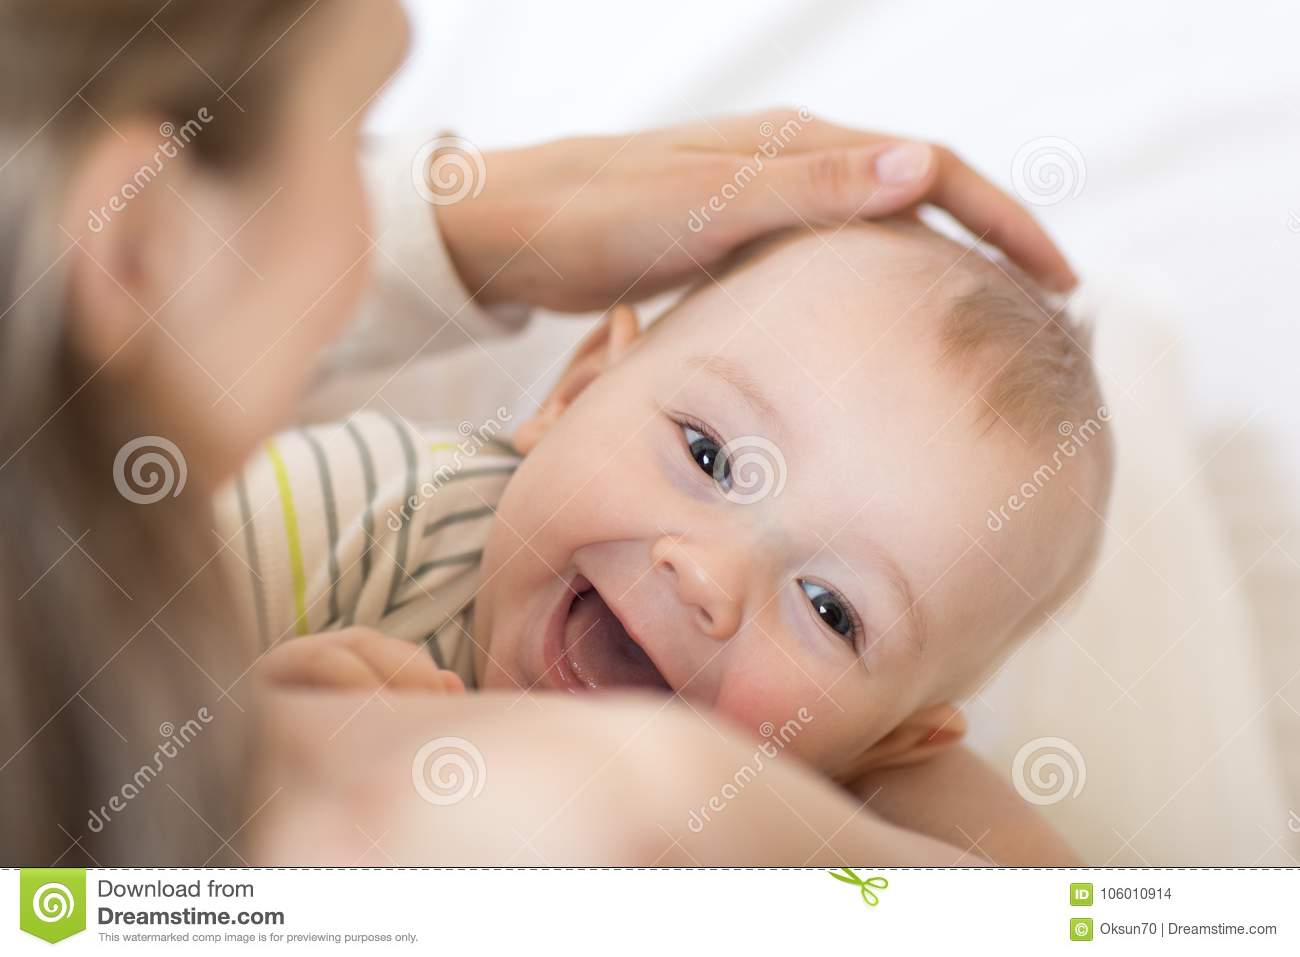 Baby breastfeeding. Mother holding her newborn child. Little kid laughing and looking at camera.